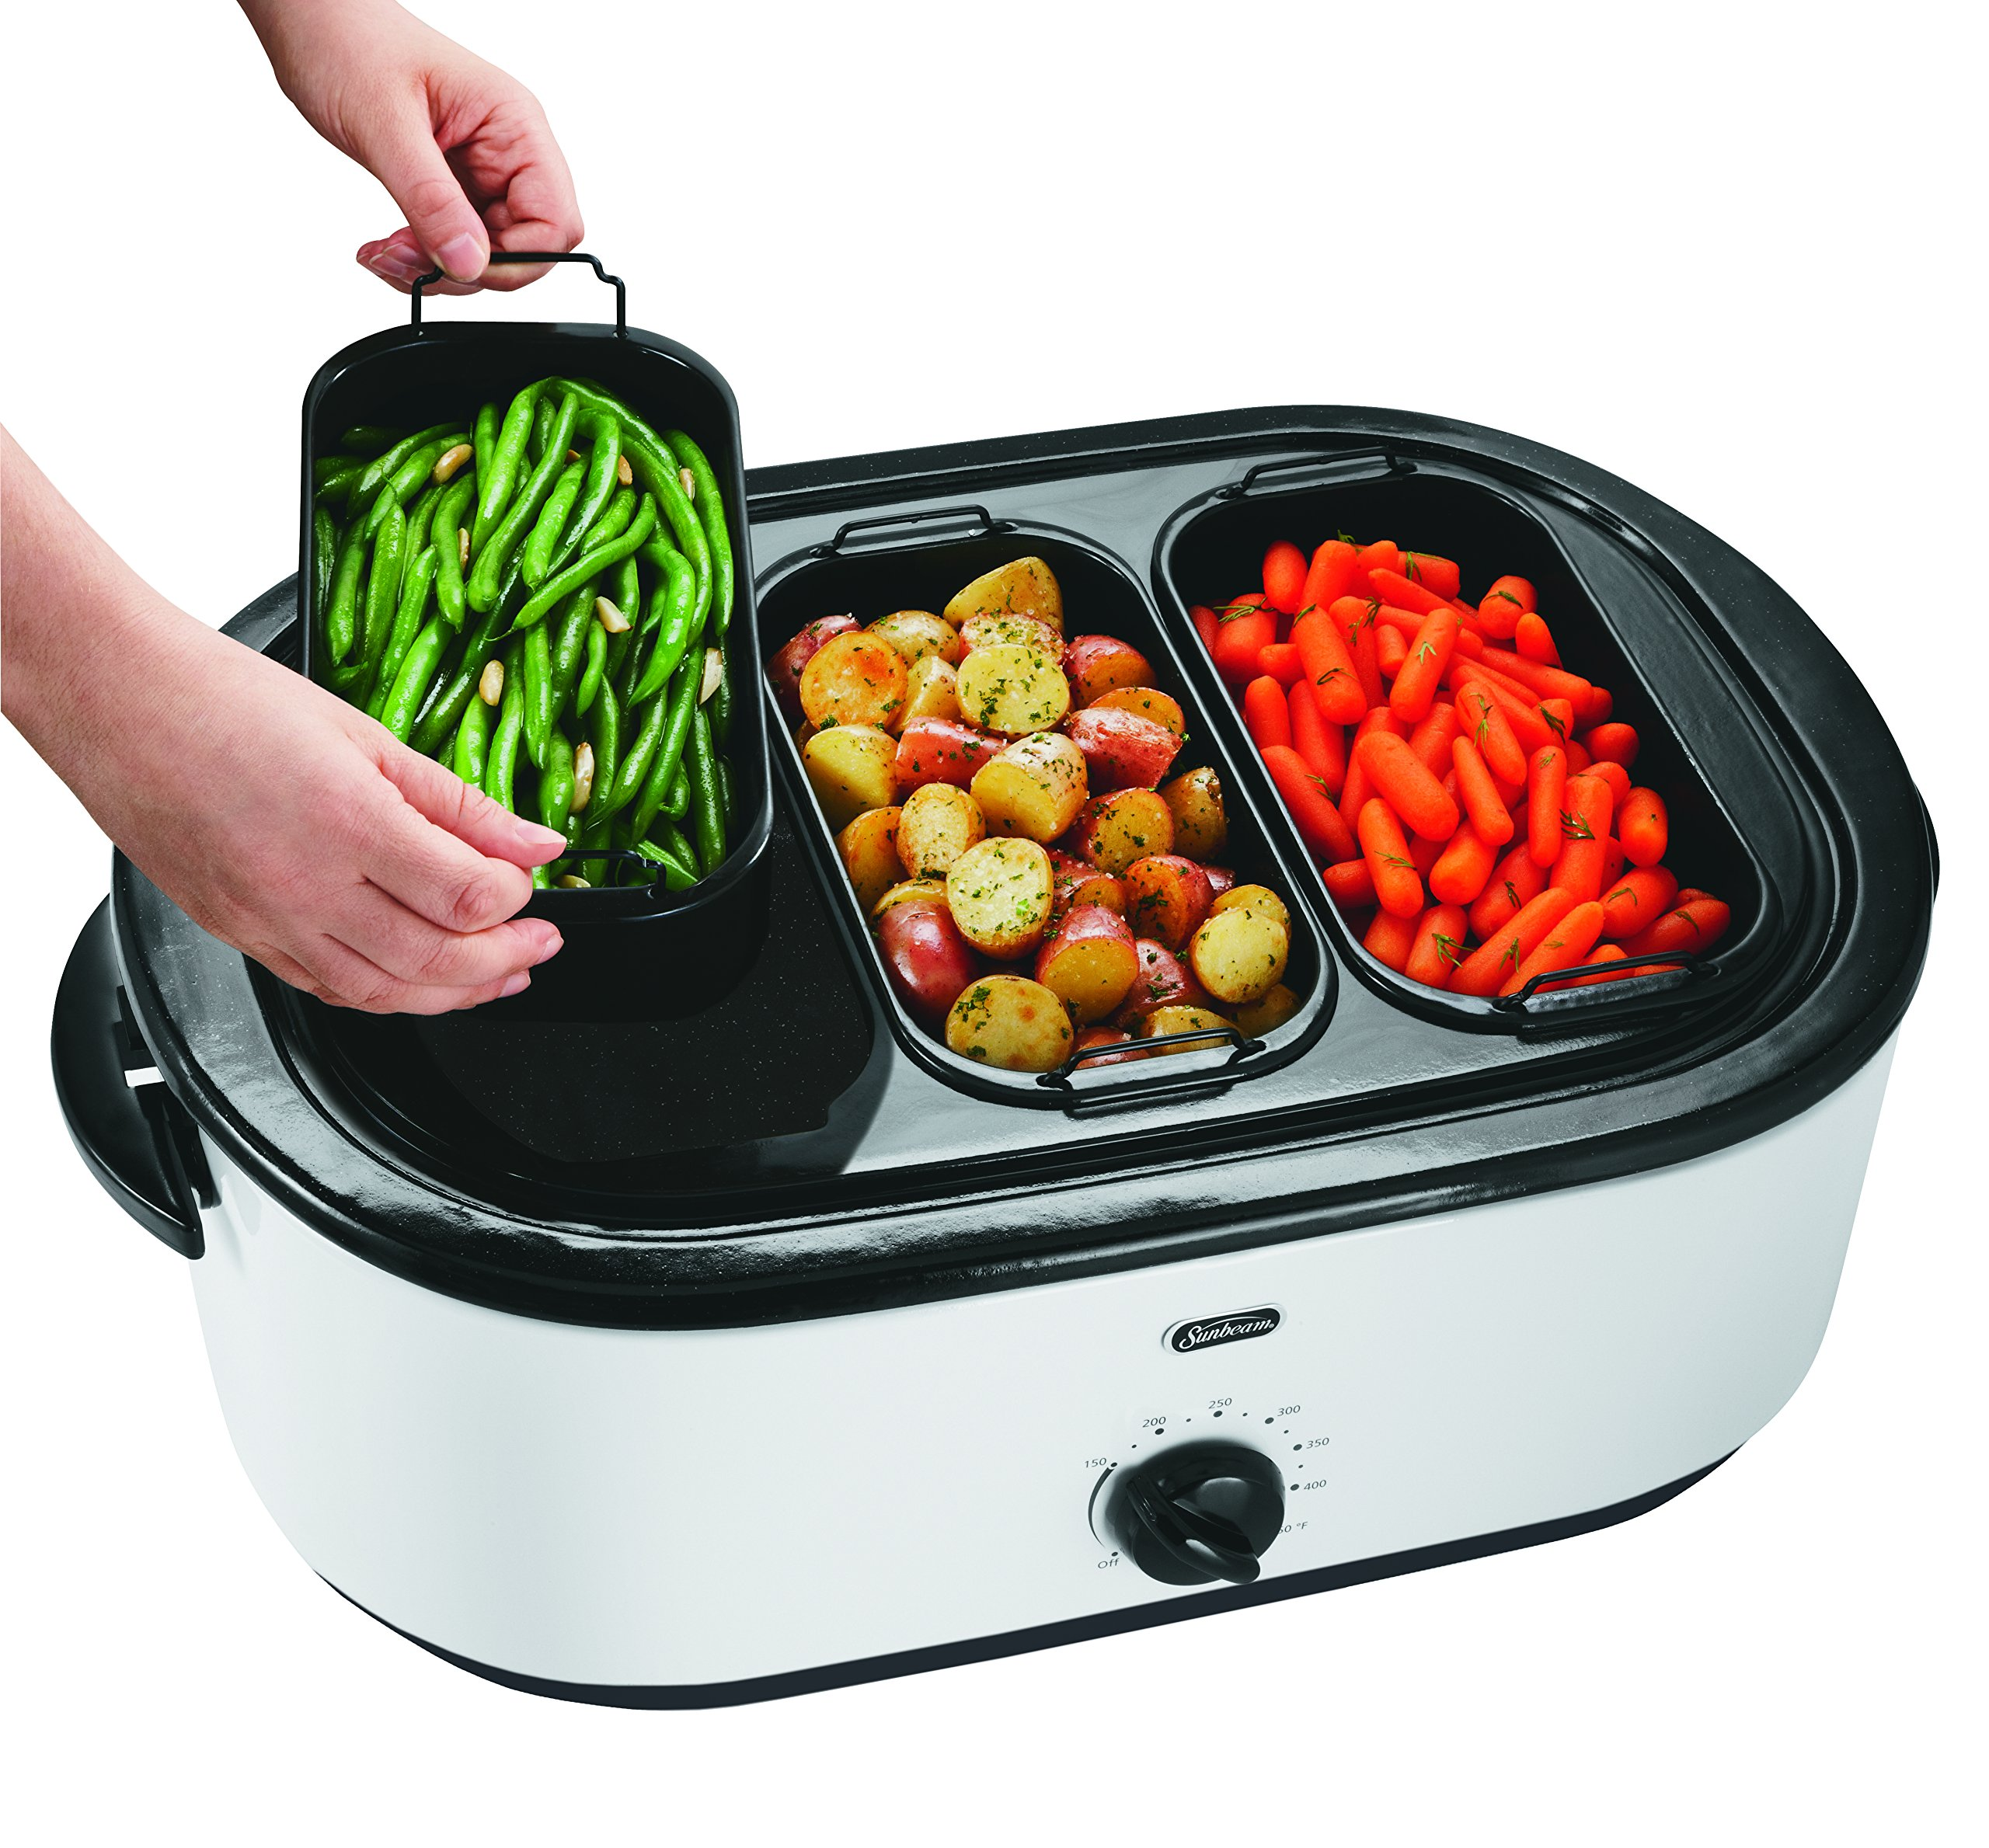 Oster 18 Quart Roaster Oven With Buffet Server White